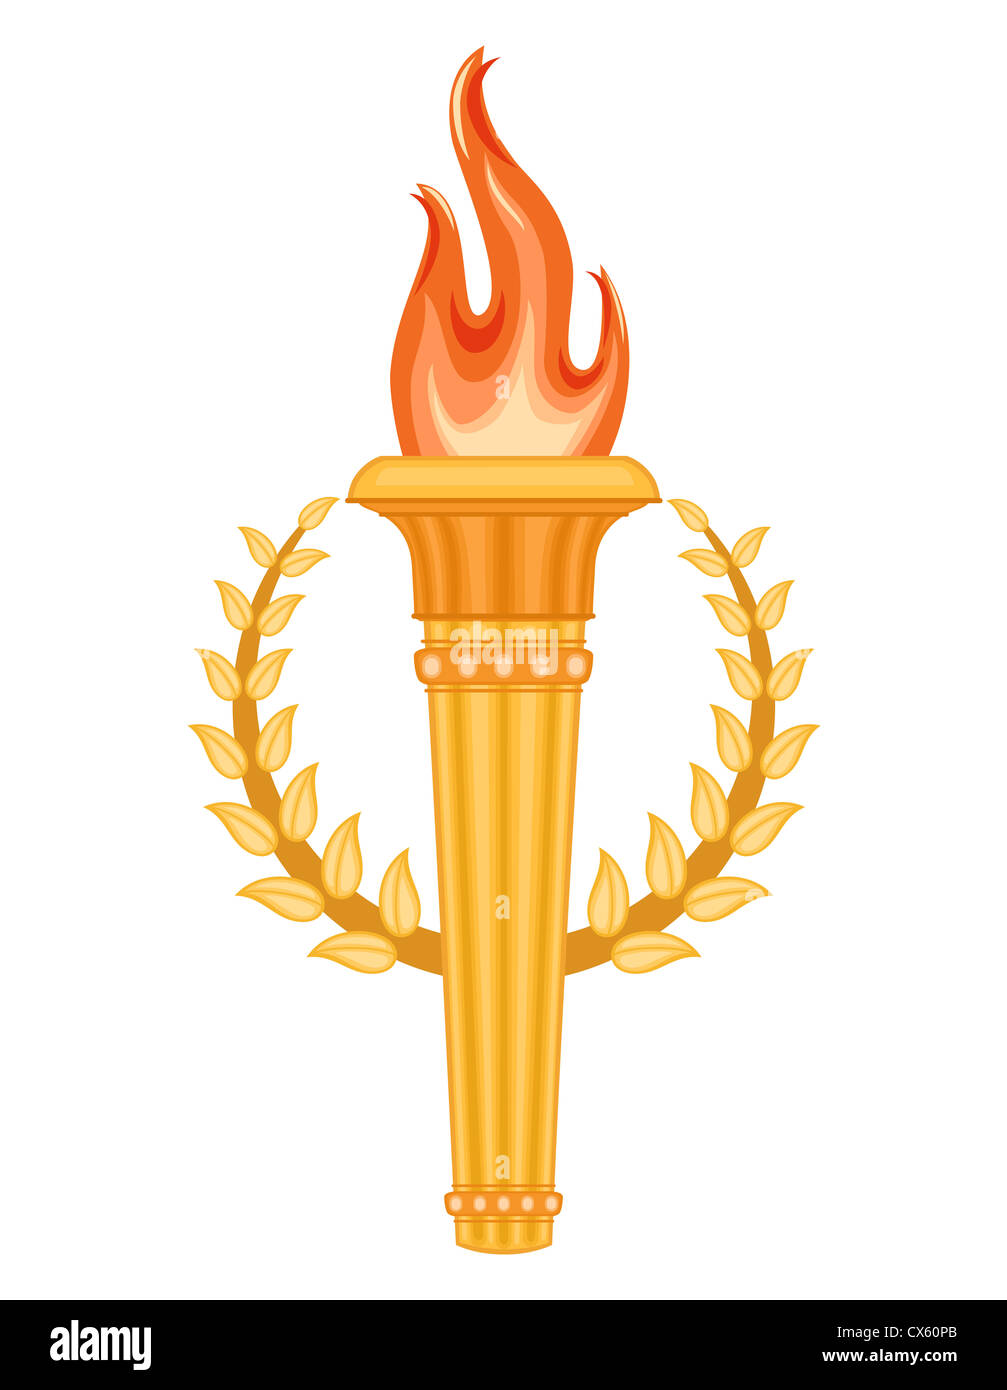 Greek Olympic Torch with golden crown of laurels. Olympics games symbol. Isolated over white background. - Stock Image